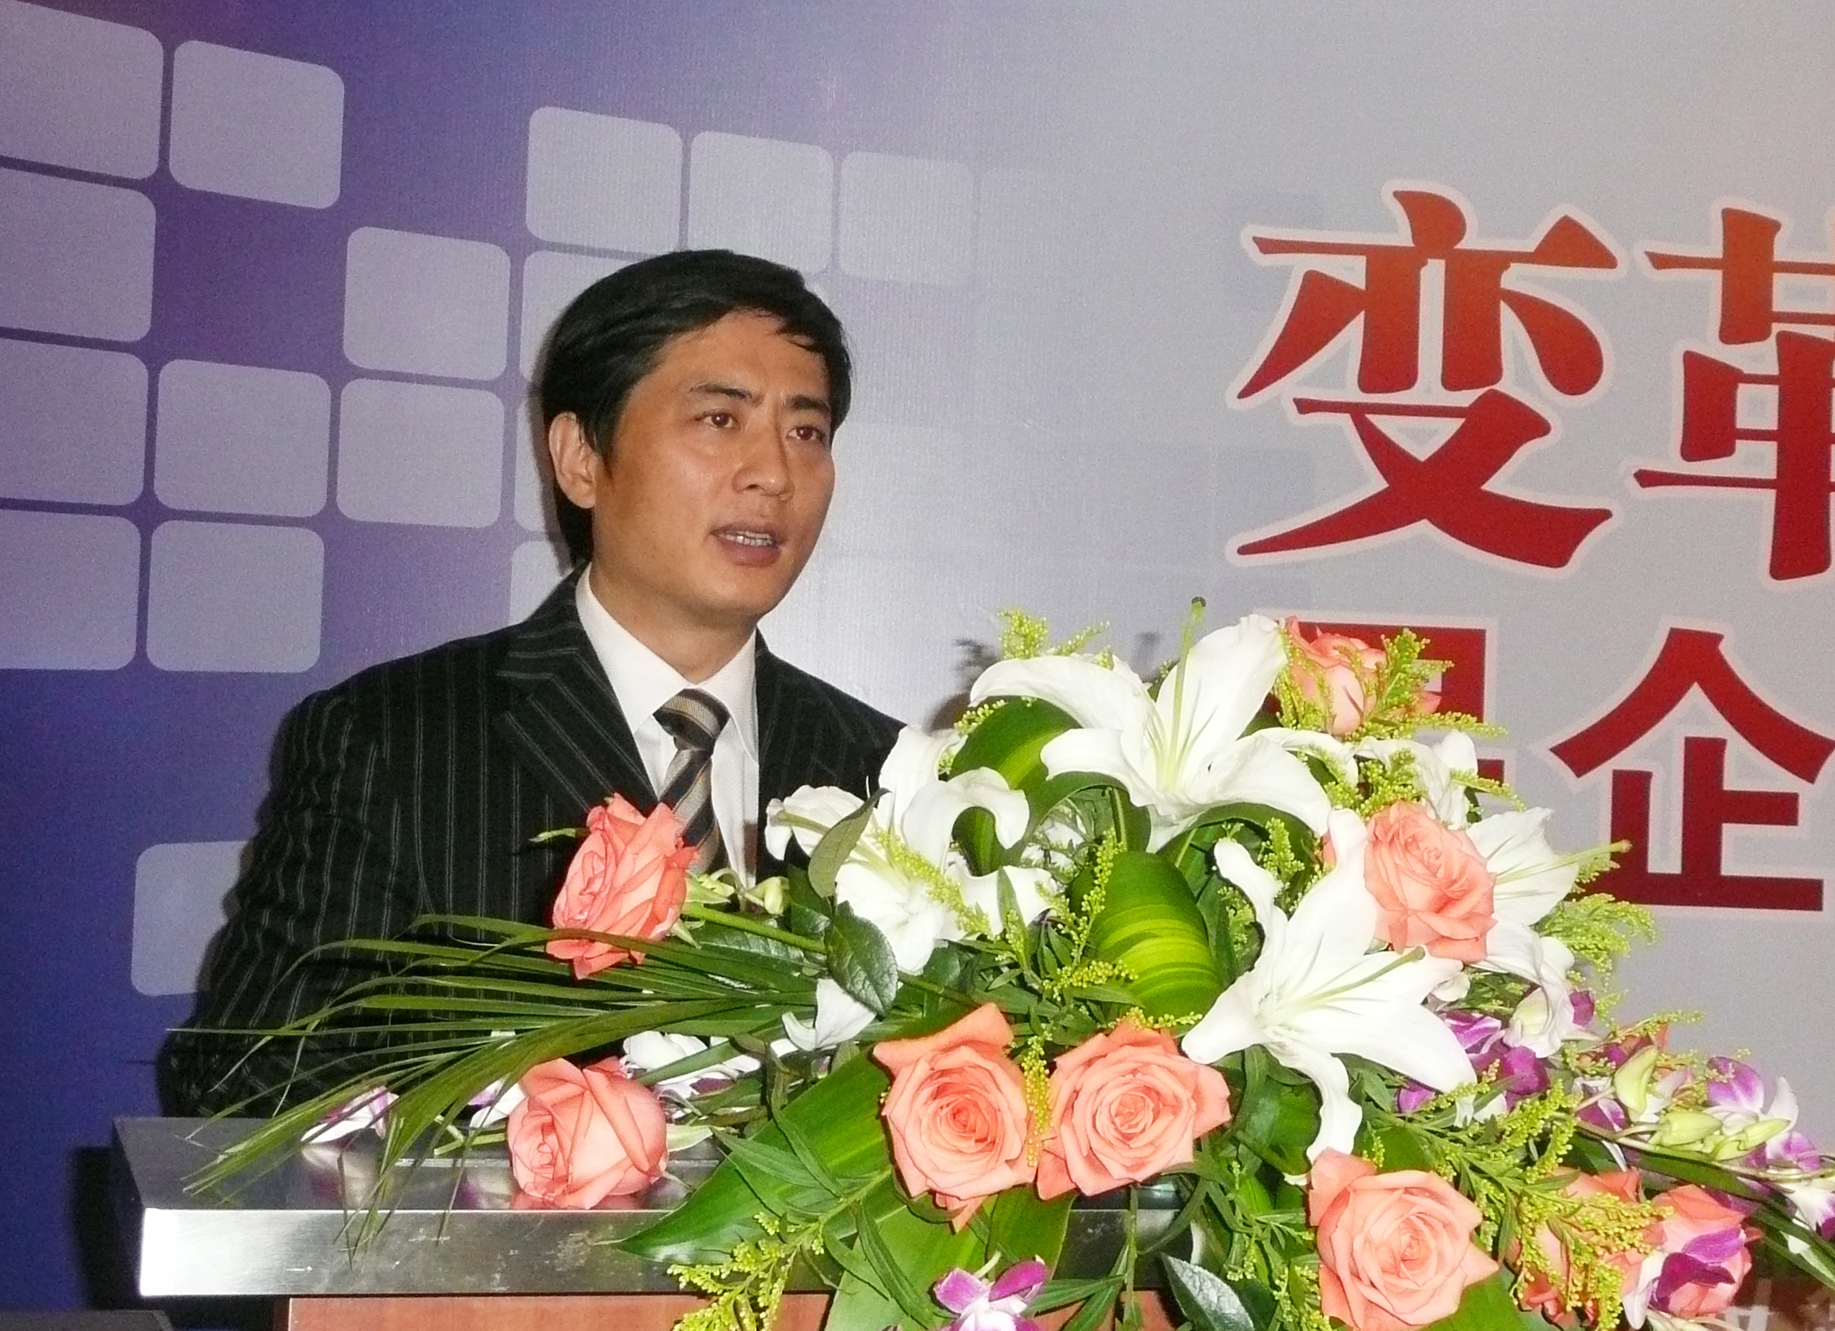 Making a speech about strategy at Qinghua University in 2009